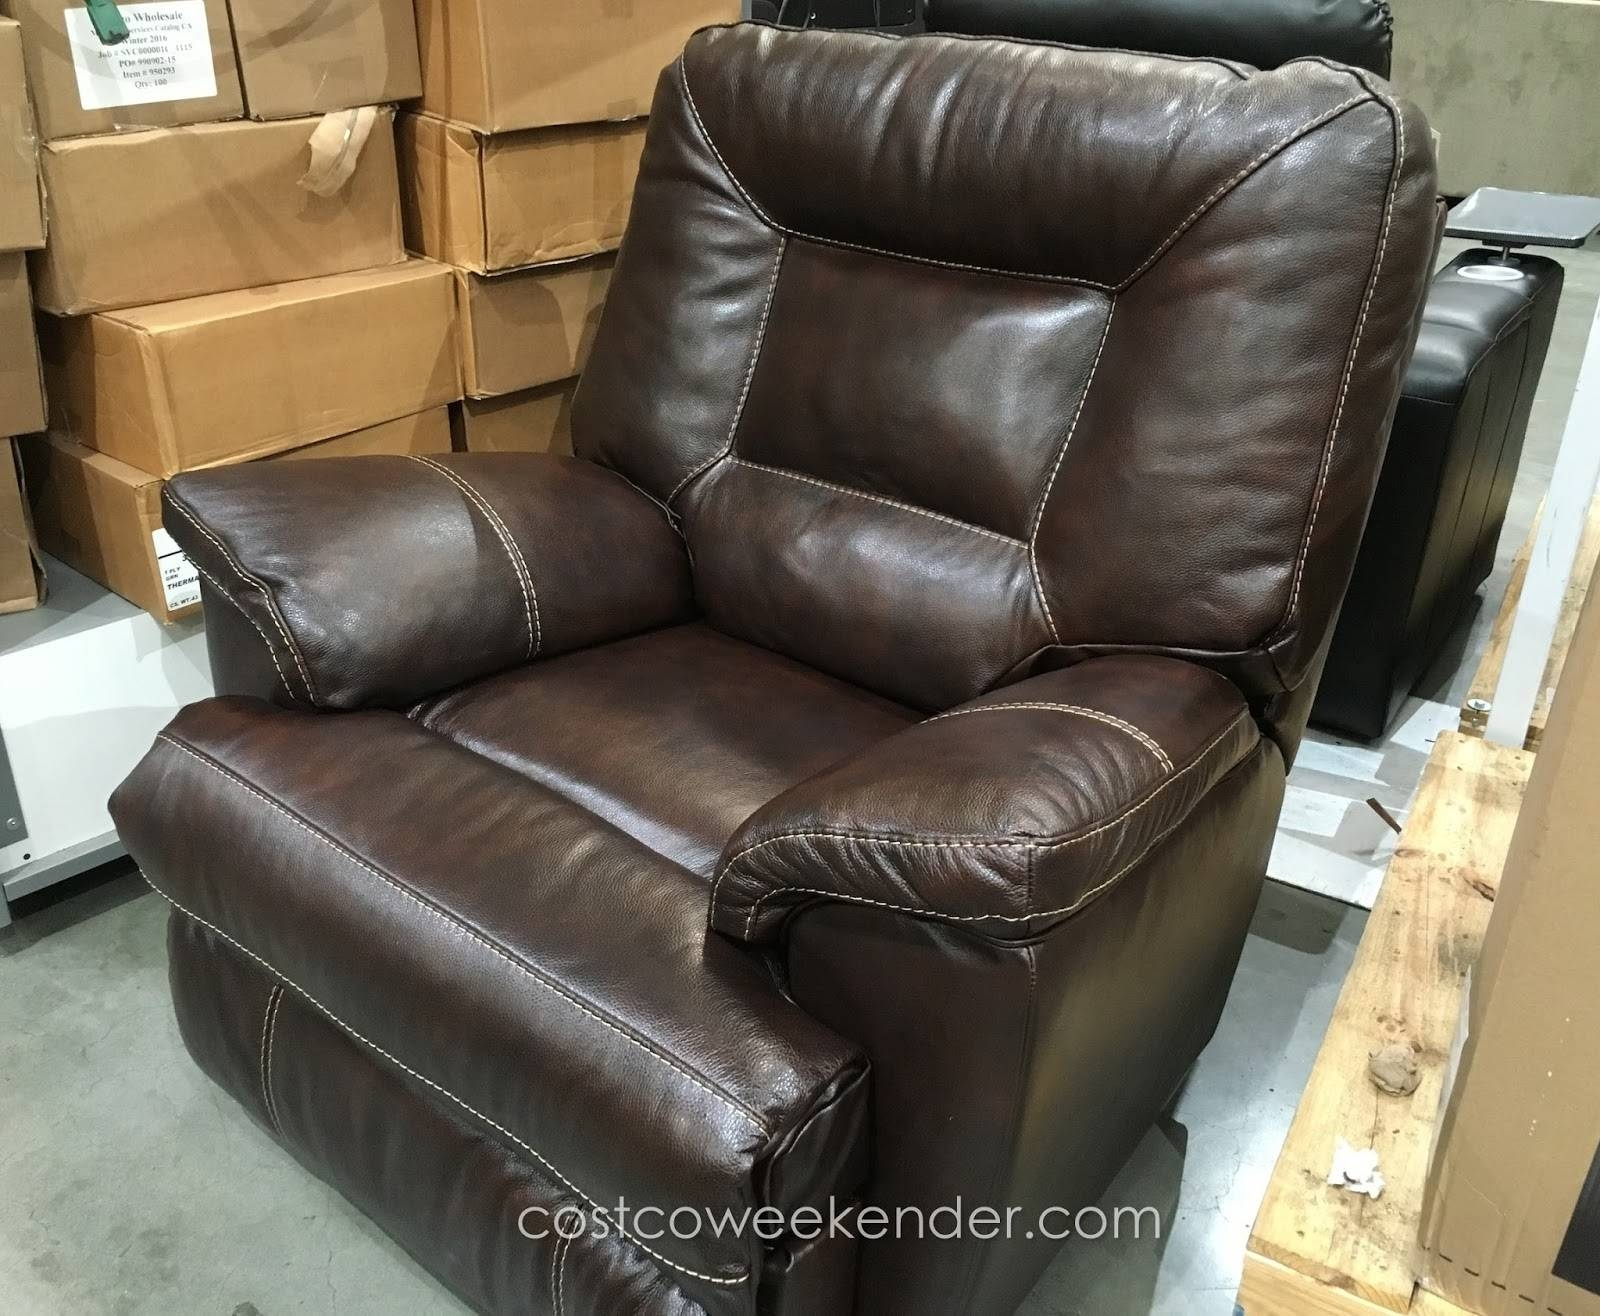 Furniture & Sofa: Enjoy Your Holiday With Costco Home Theater pertaining to Berkline Sofa Recliner (Image 16 of 30)